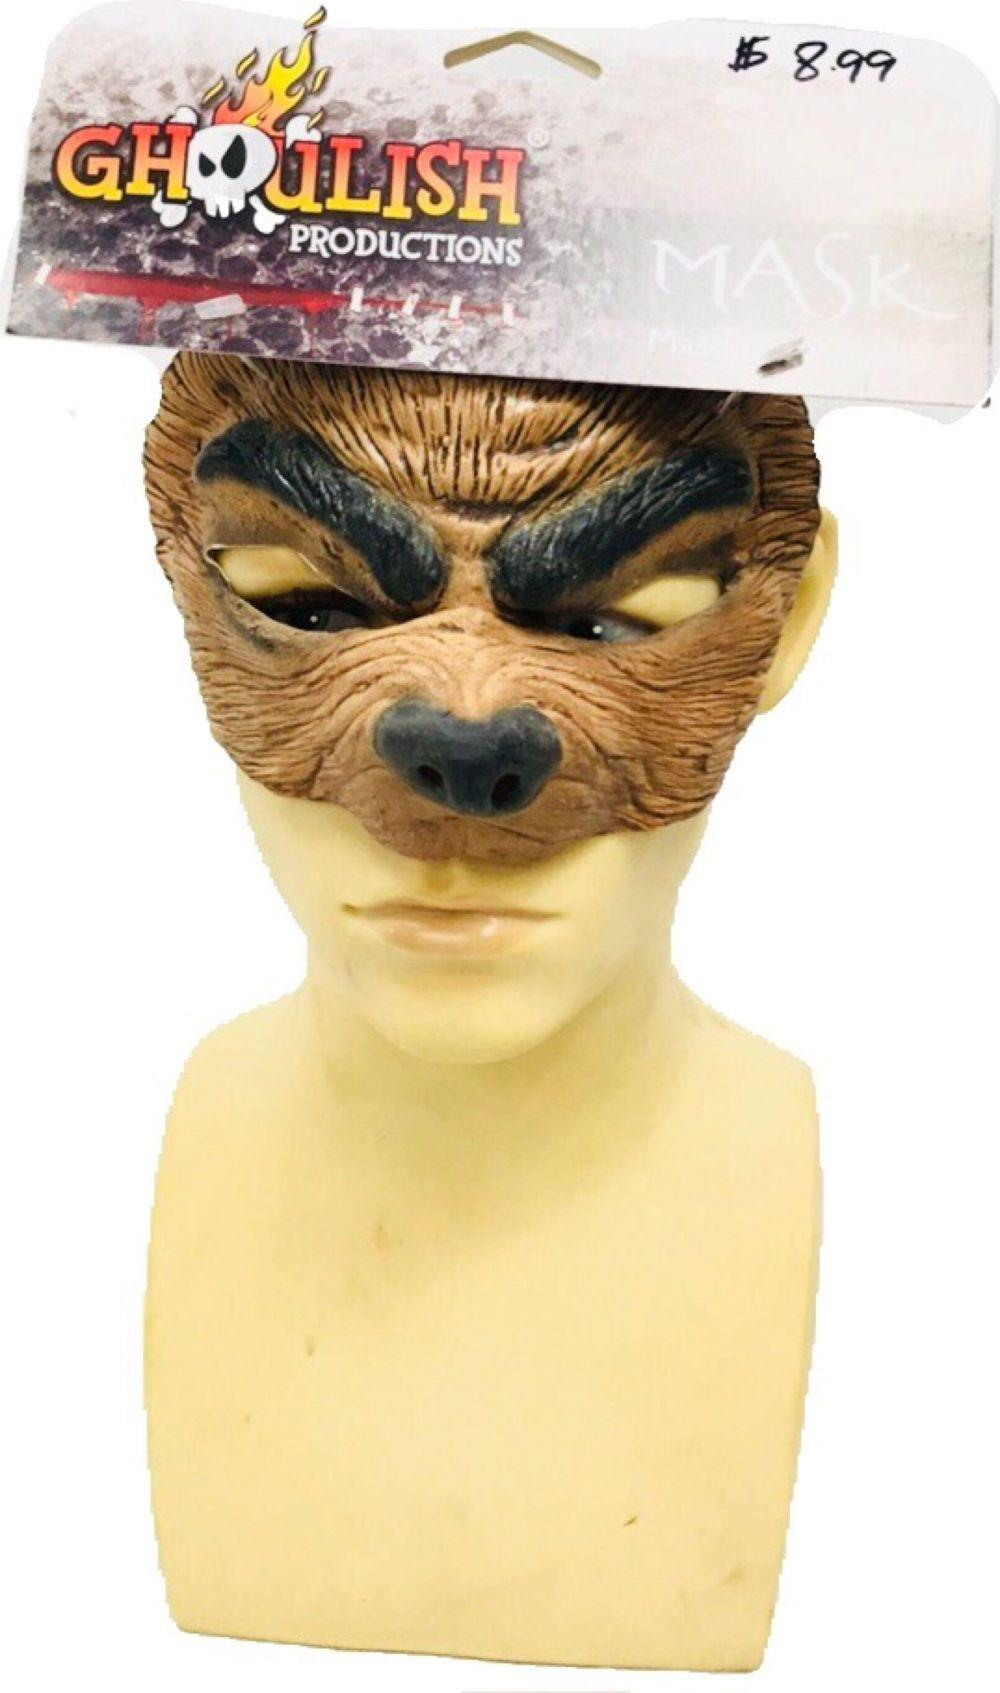 NOS - Ghoulish Productions - Wolf Mask - Halloween Accessory